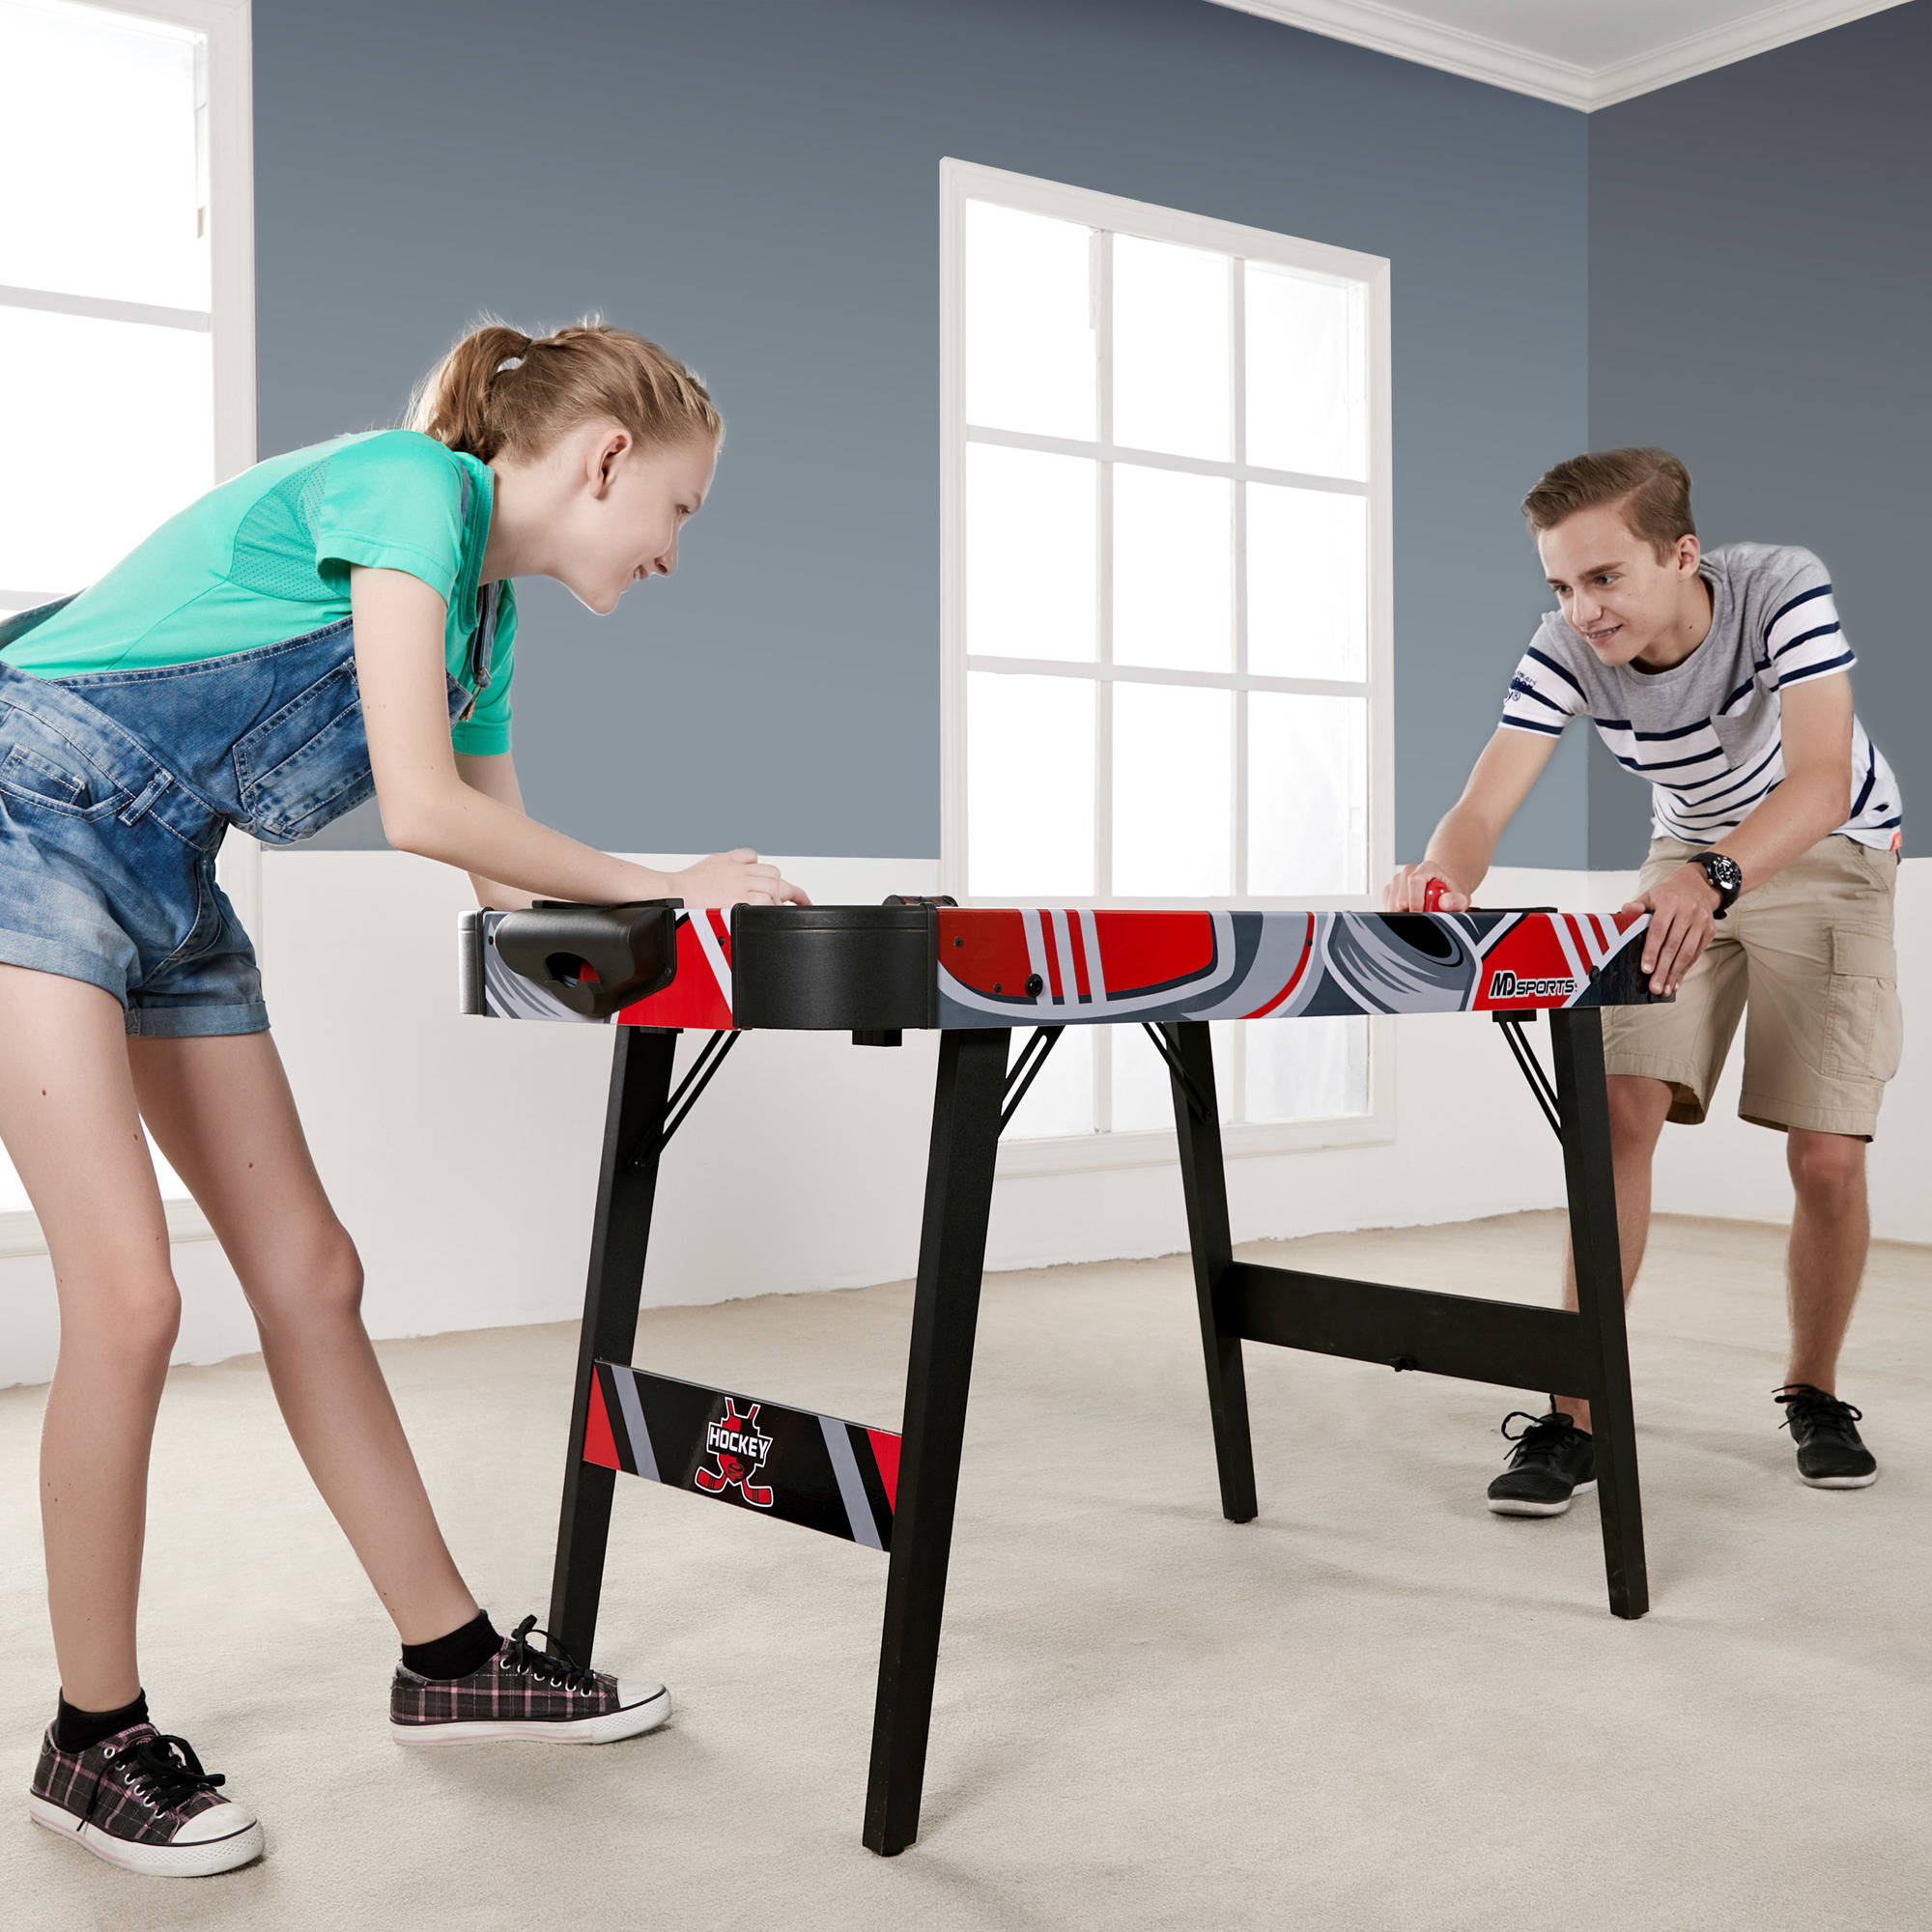 MD Sports Easy Assembly 48 Inch Air Powered Hockey Table, Space-Saving Design, Foldable Legs